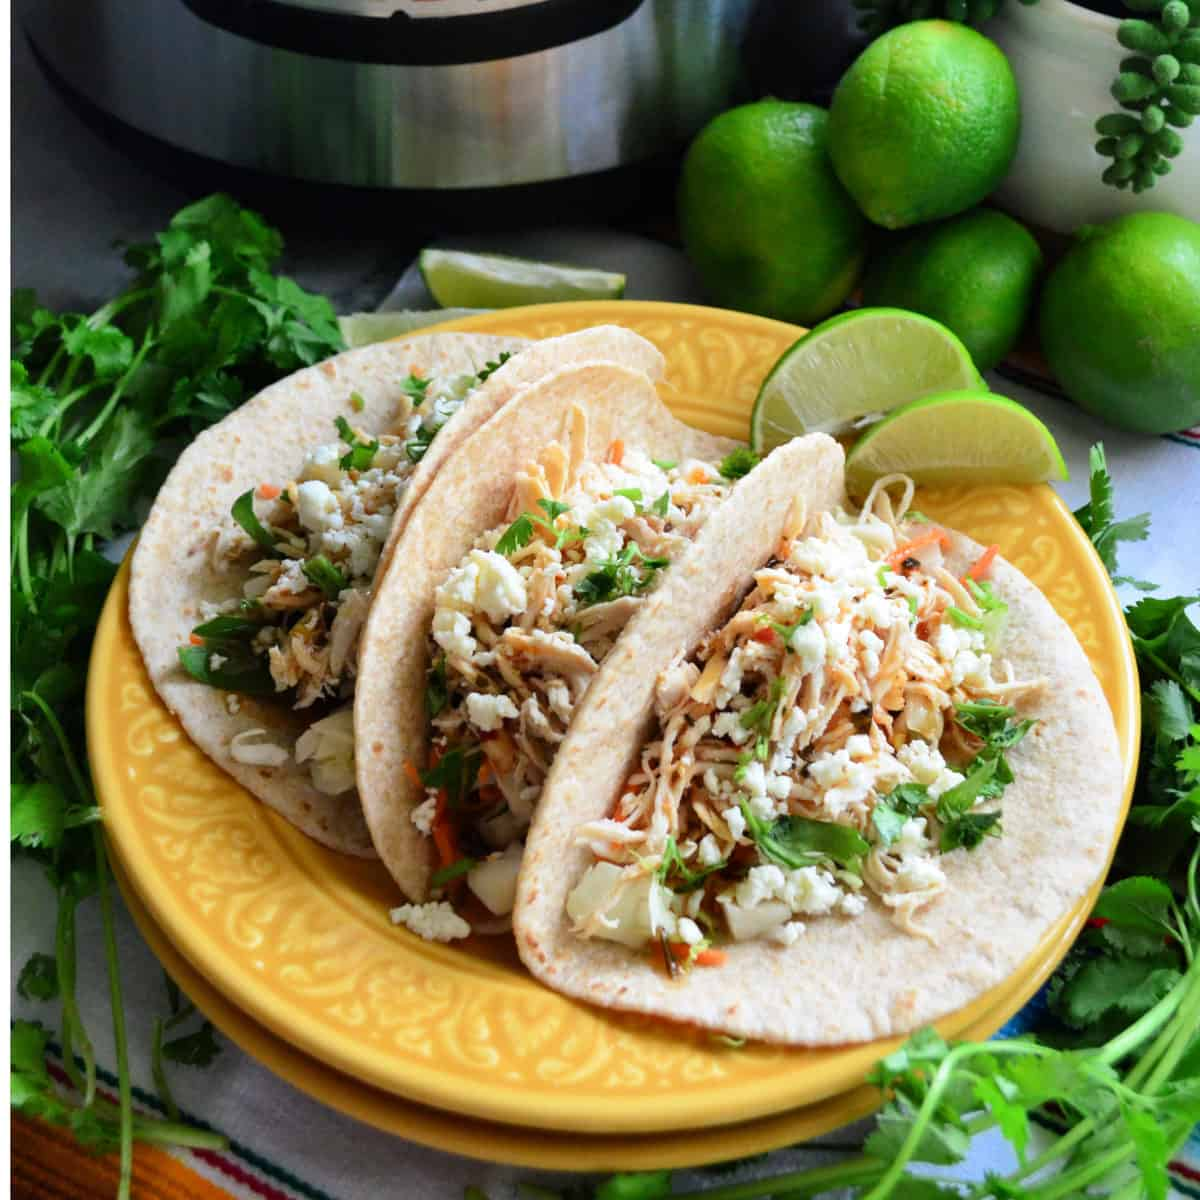 3 flour tortilla tacos filled with shredded chicken, cheese, and herbs surrounded by limes and cilantro.